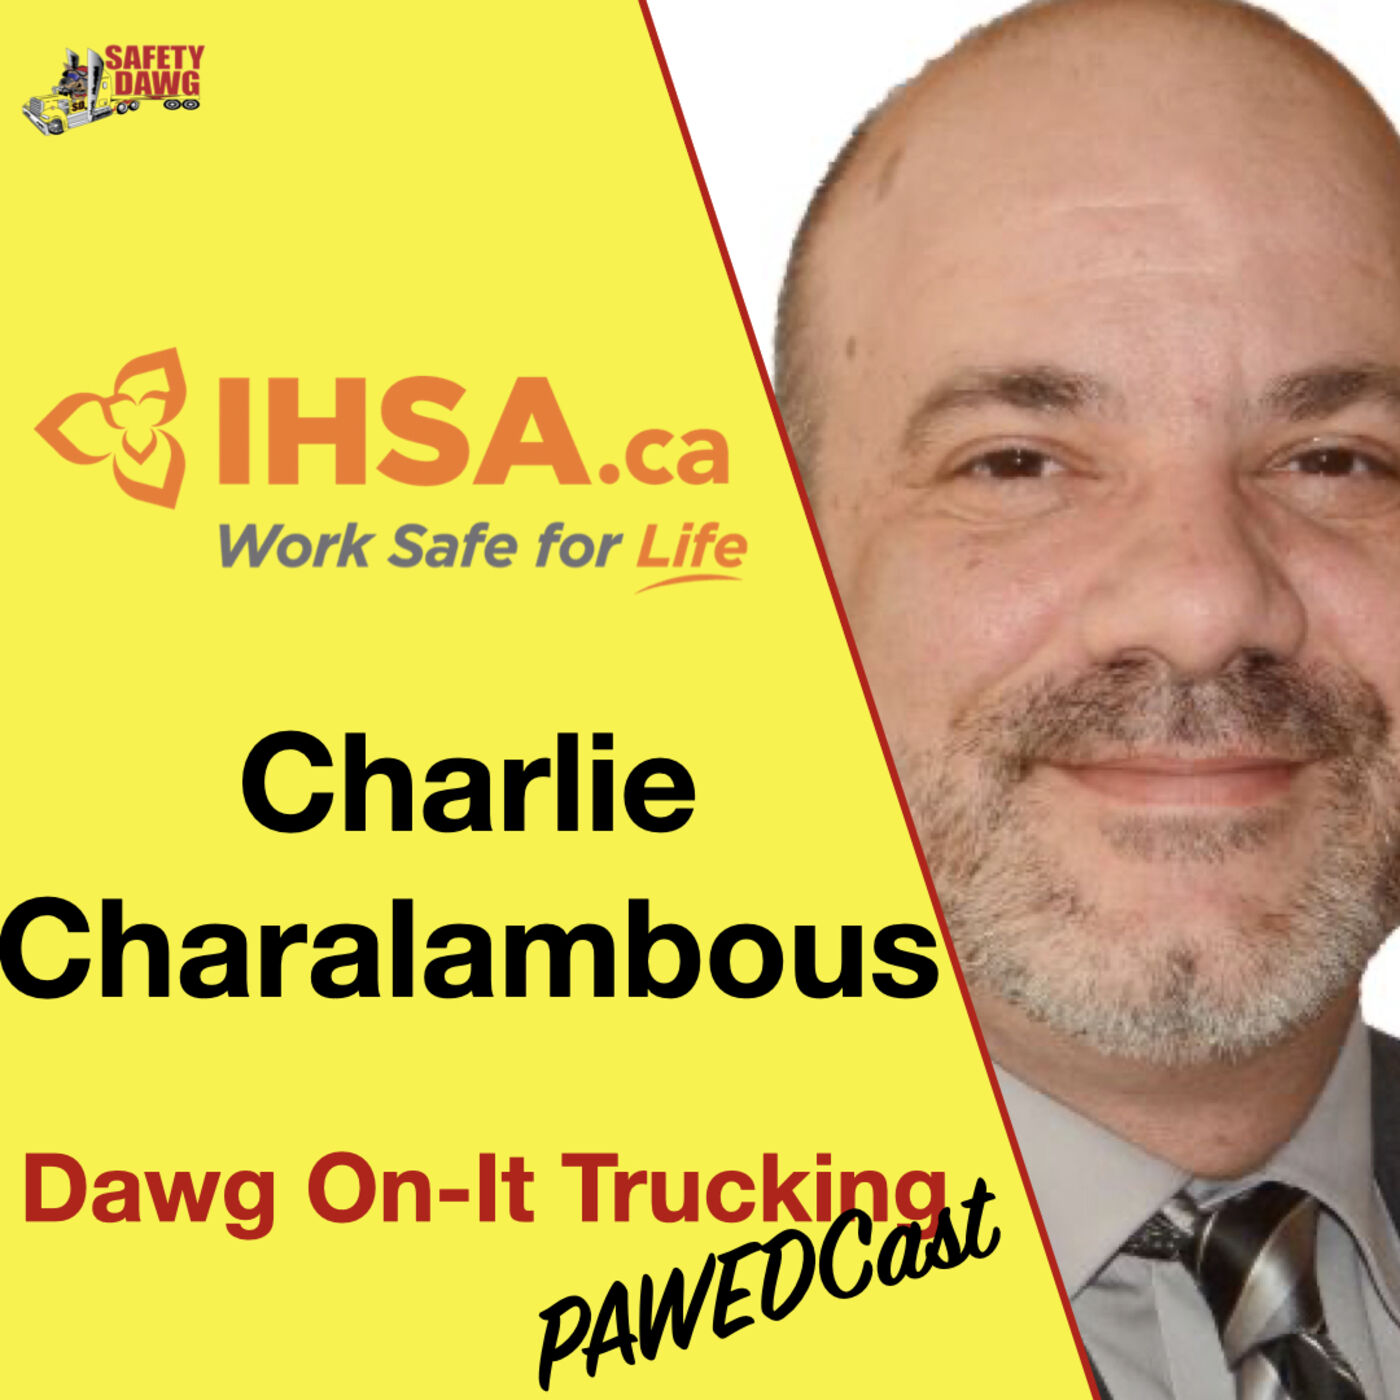 19. Charlie Charalambous of the IHSA (Infrastructure Health & Safety Association)